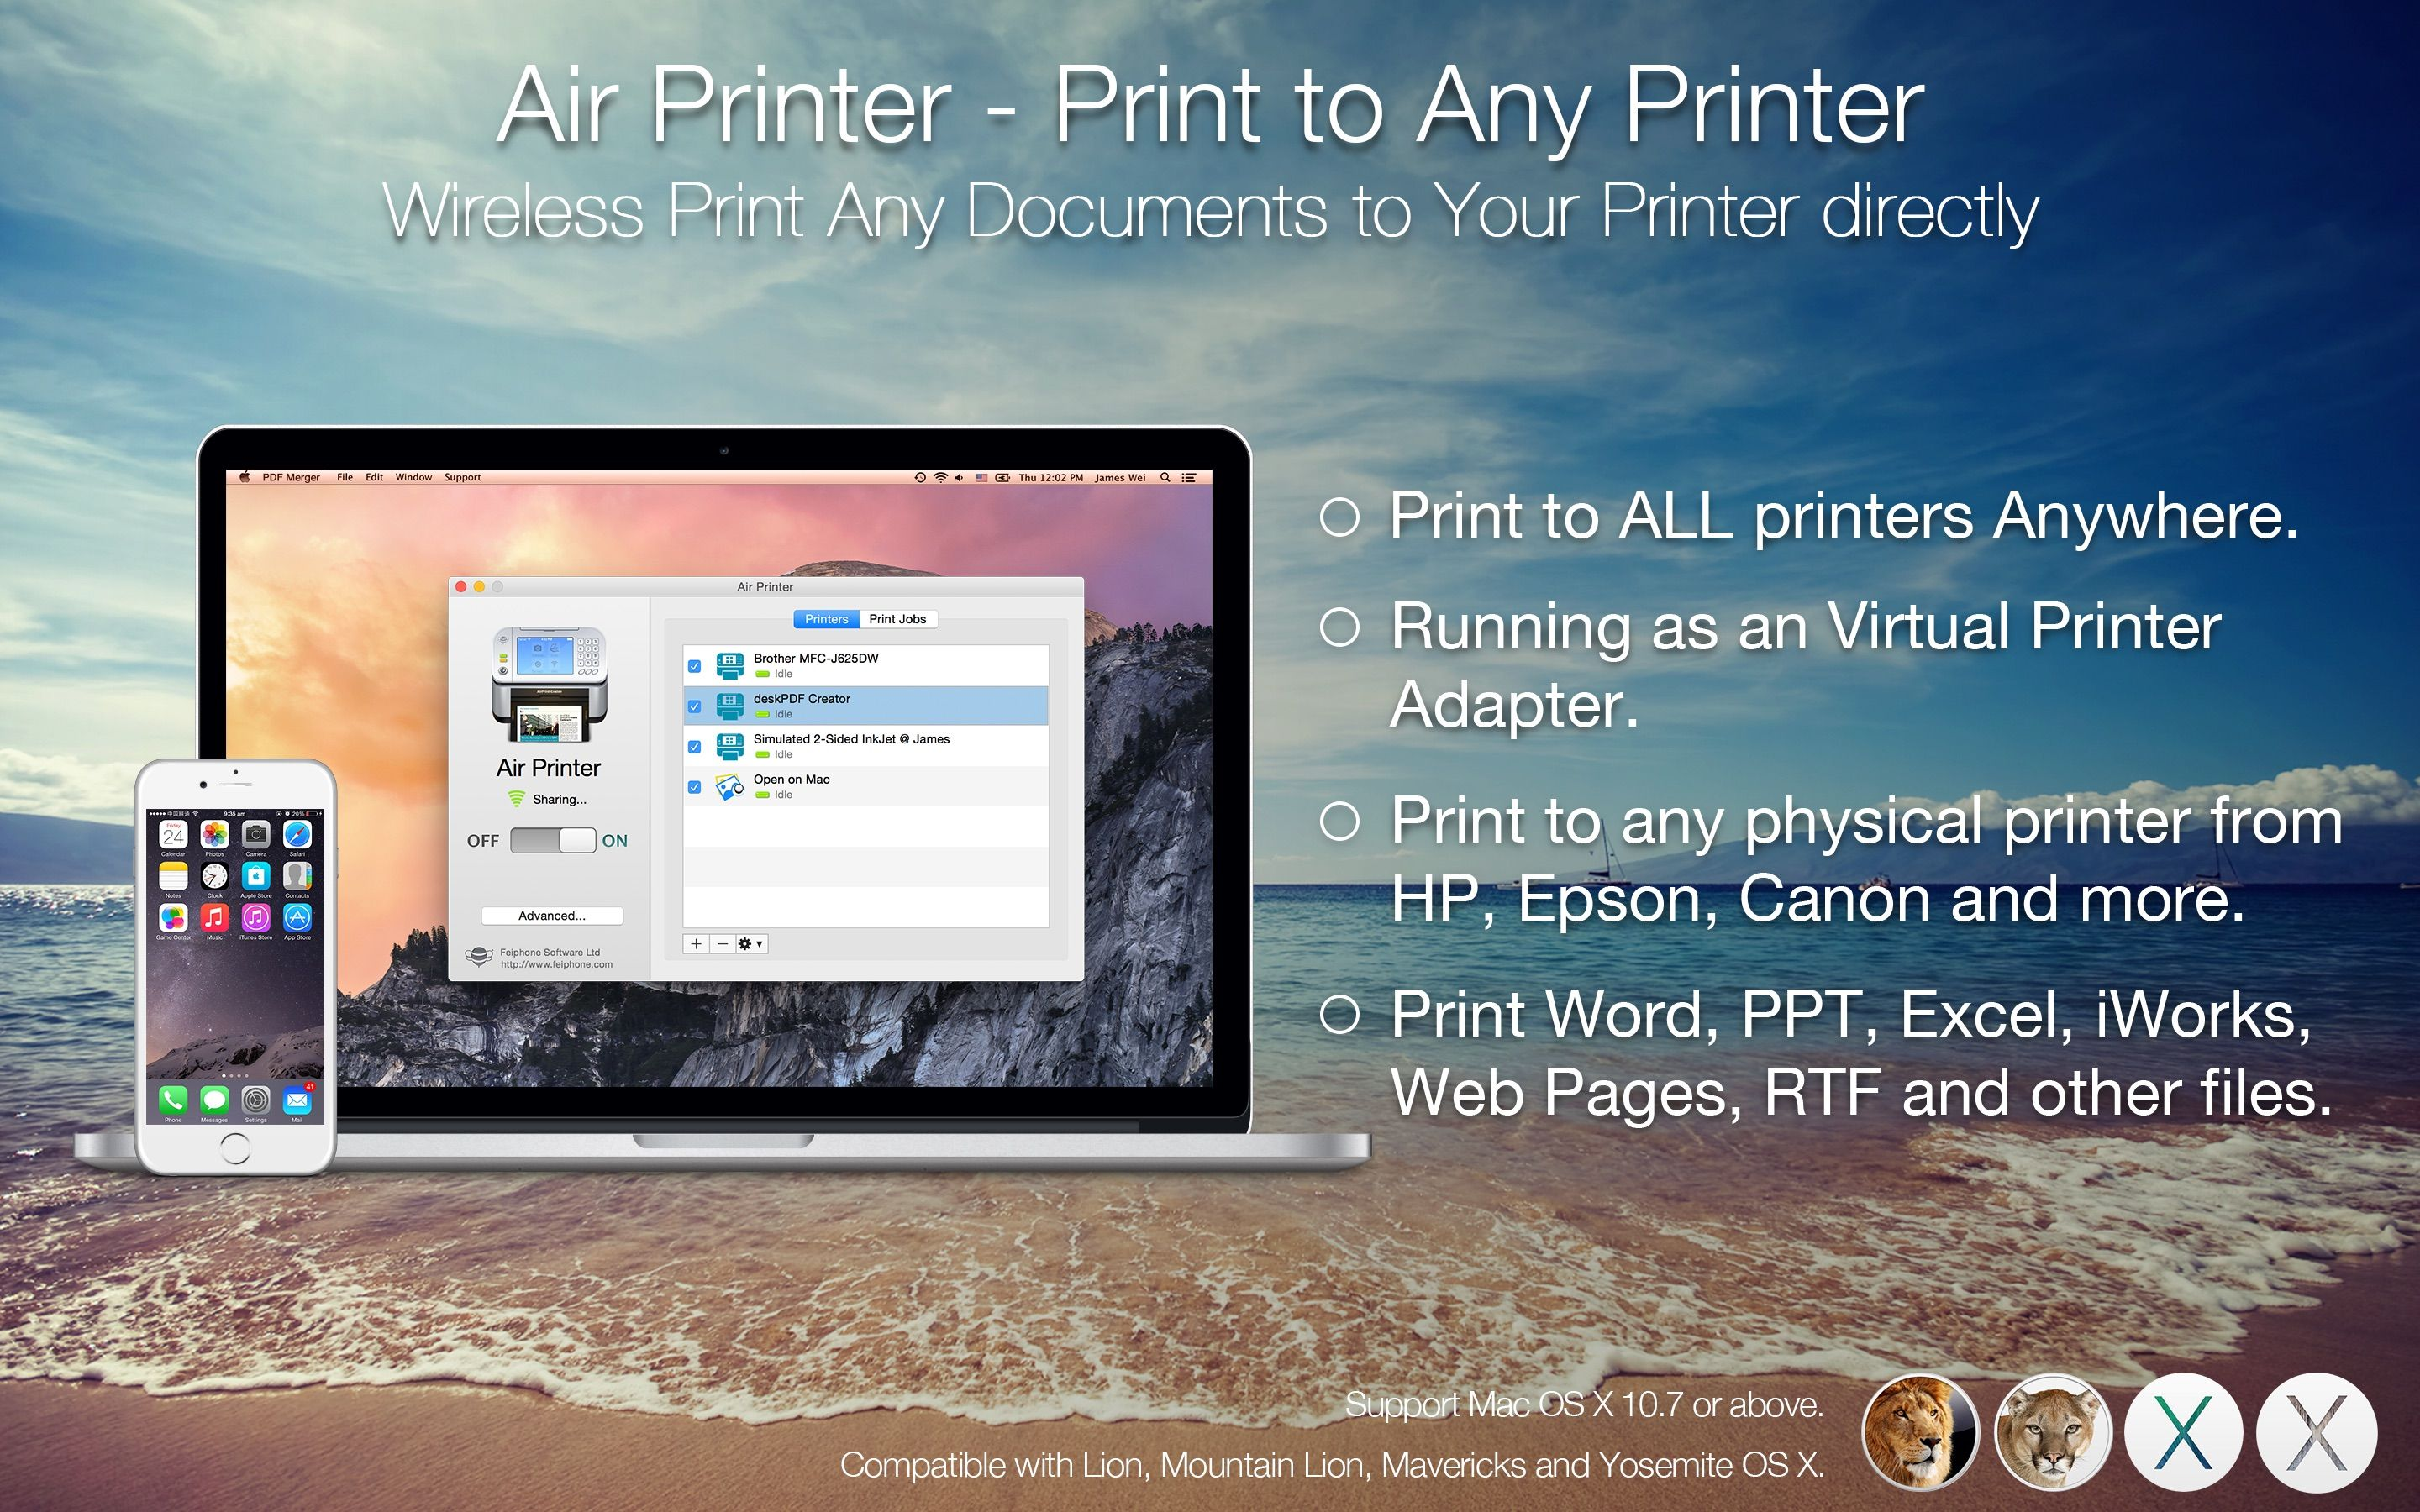 Download Air Printer by feiphone on the Mac App Store from